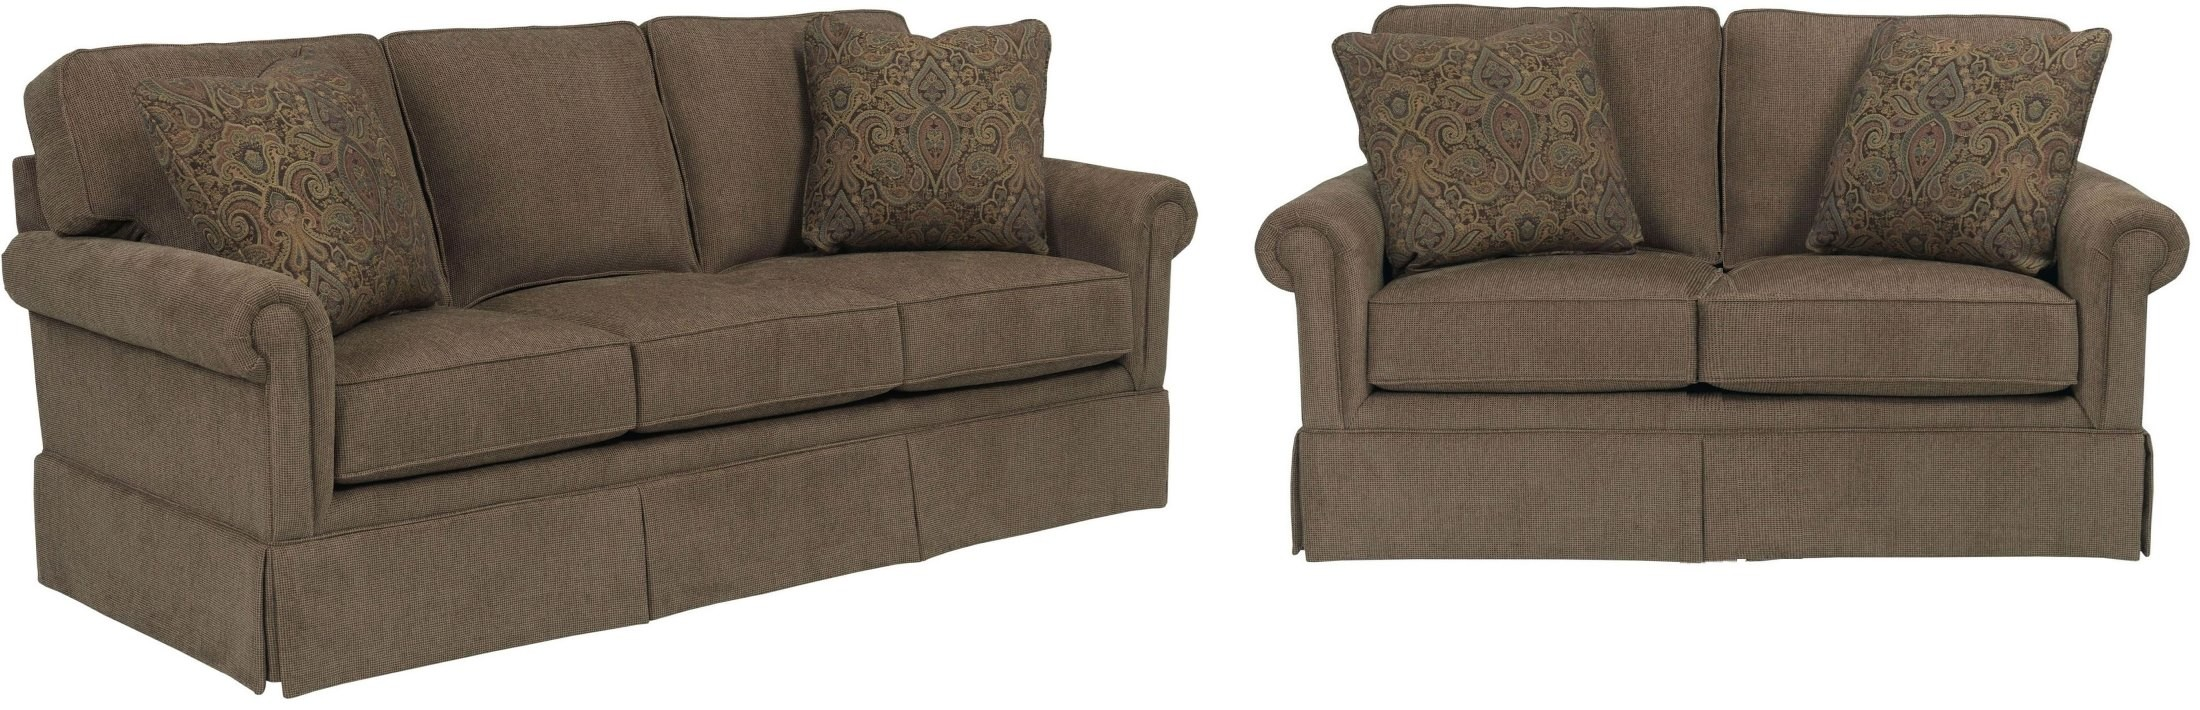 Audrey Chenille Fabric Living Room Set From Broyhill 3762 3q2 8595 85 Coleman Furniture